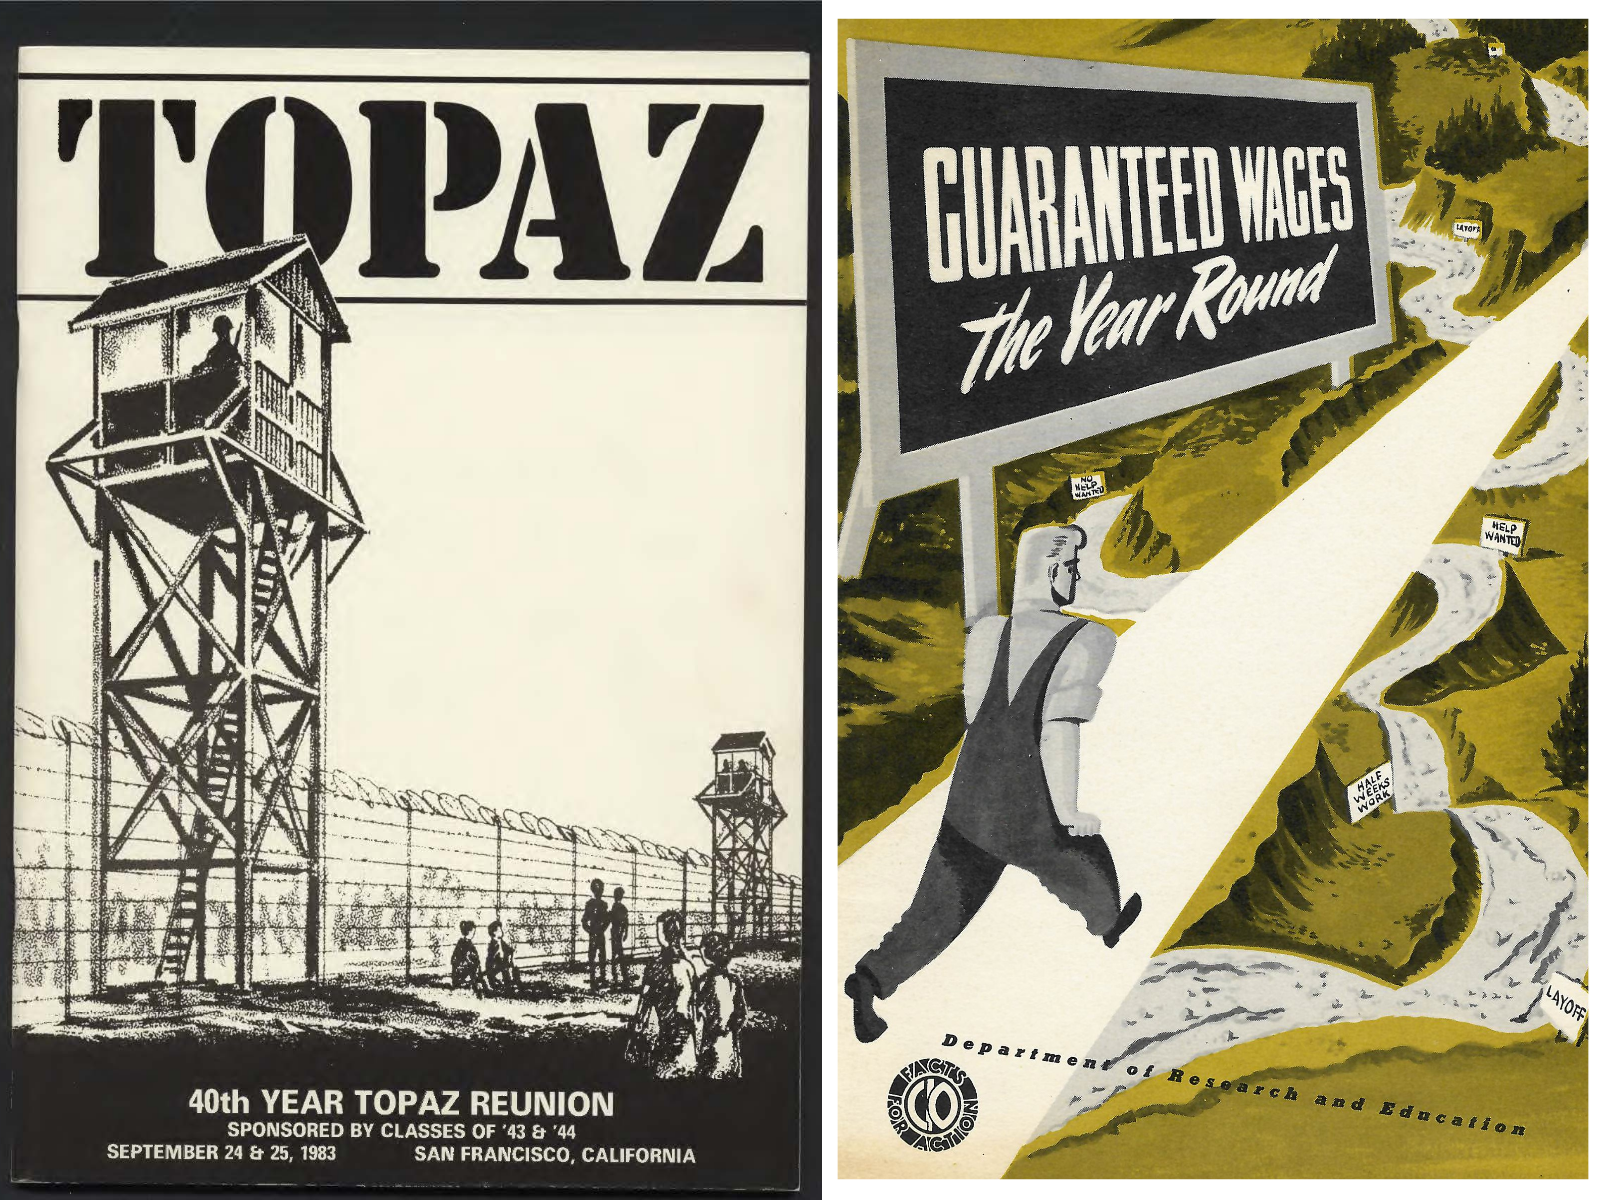 covers of Topaz incarceration anniversary publication and labor publication